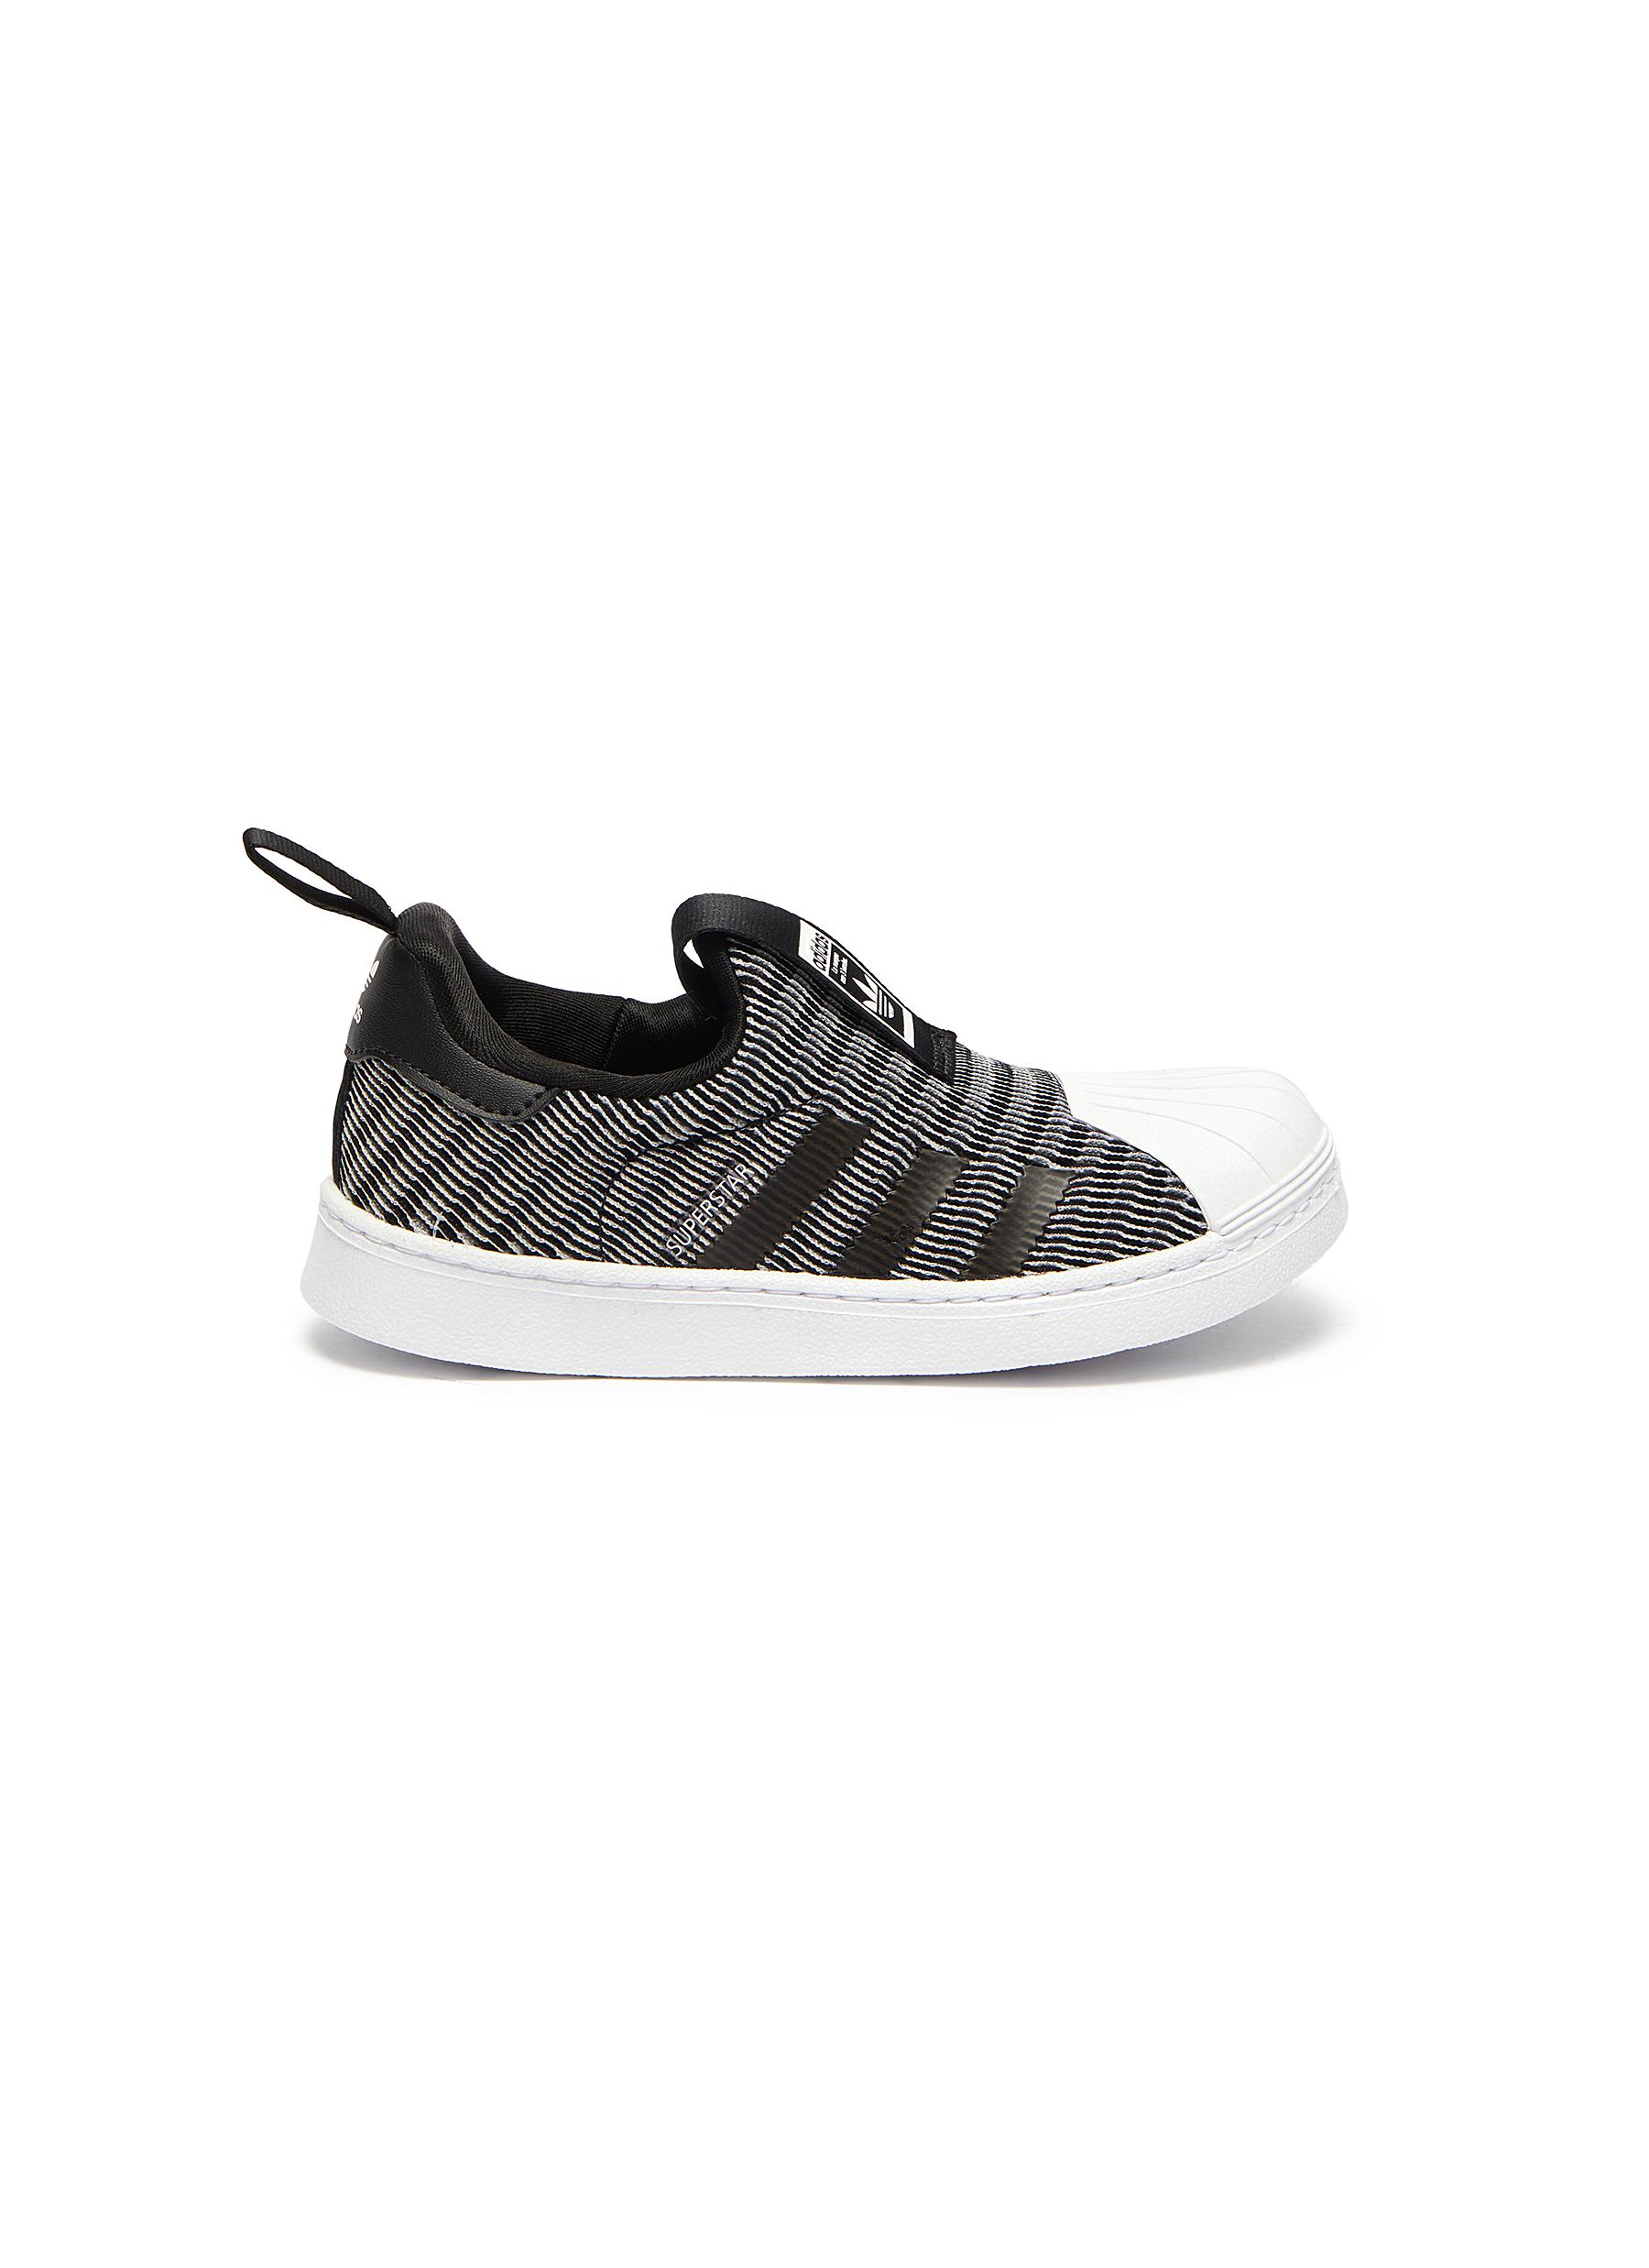 adidas slip on shoes for boys